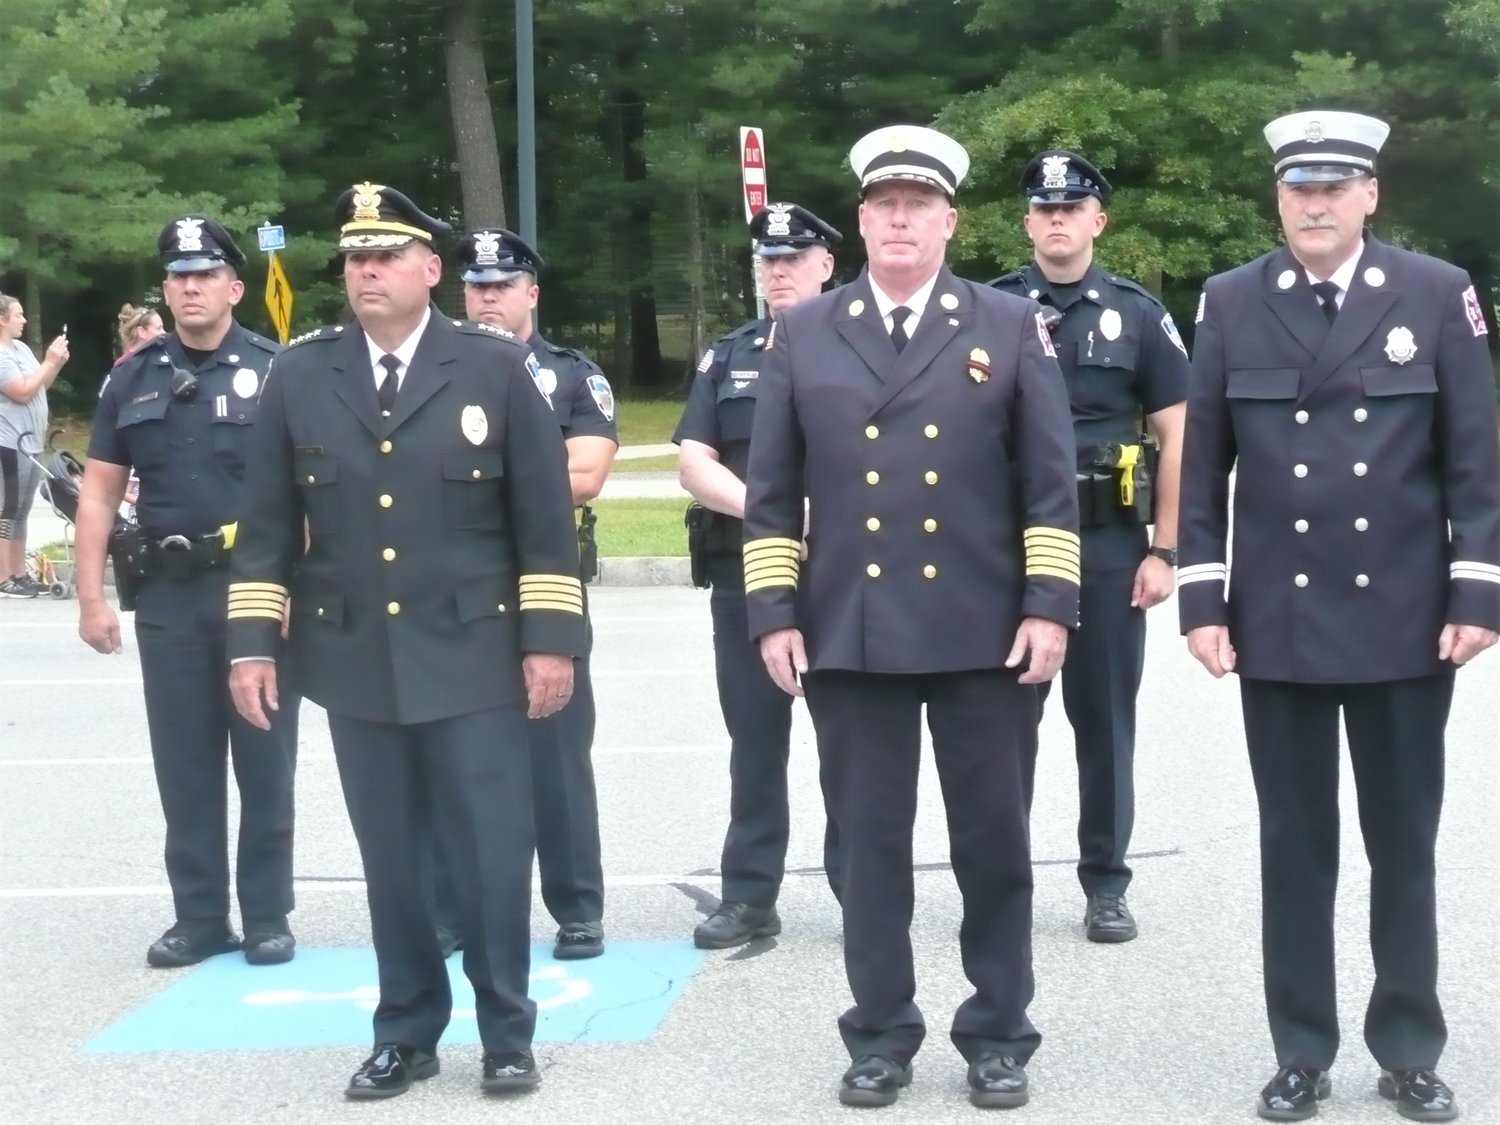 Former Fire Chief Michael Healy (center), former Police Chief Frank John is to his left.